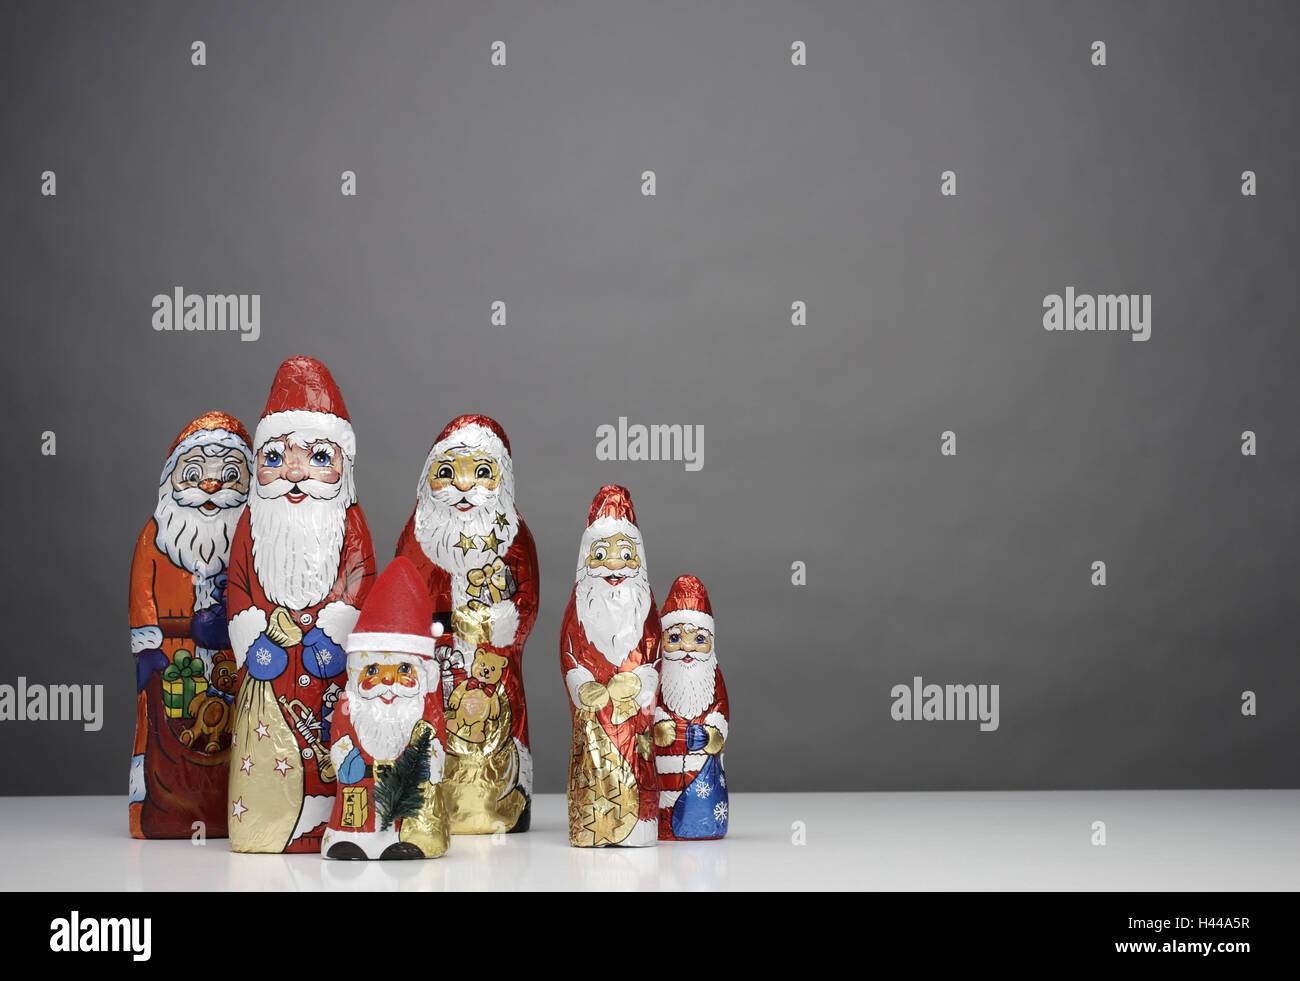 Chocolate Santa Clauses, differently, Stock Photo